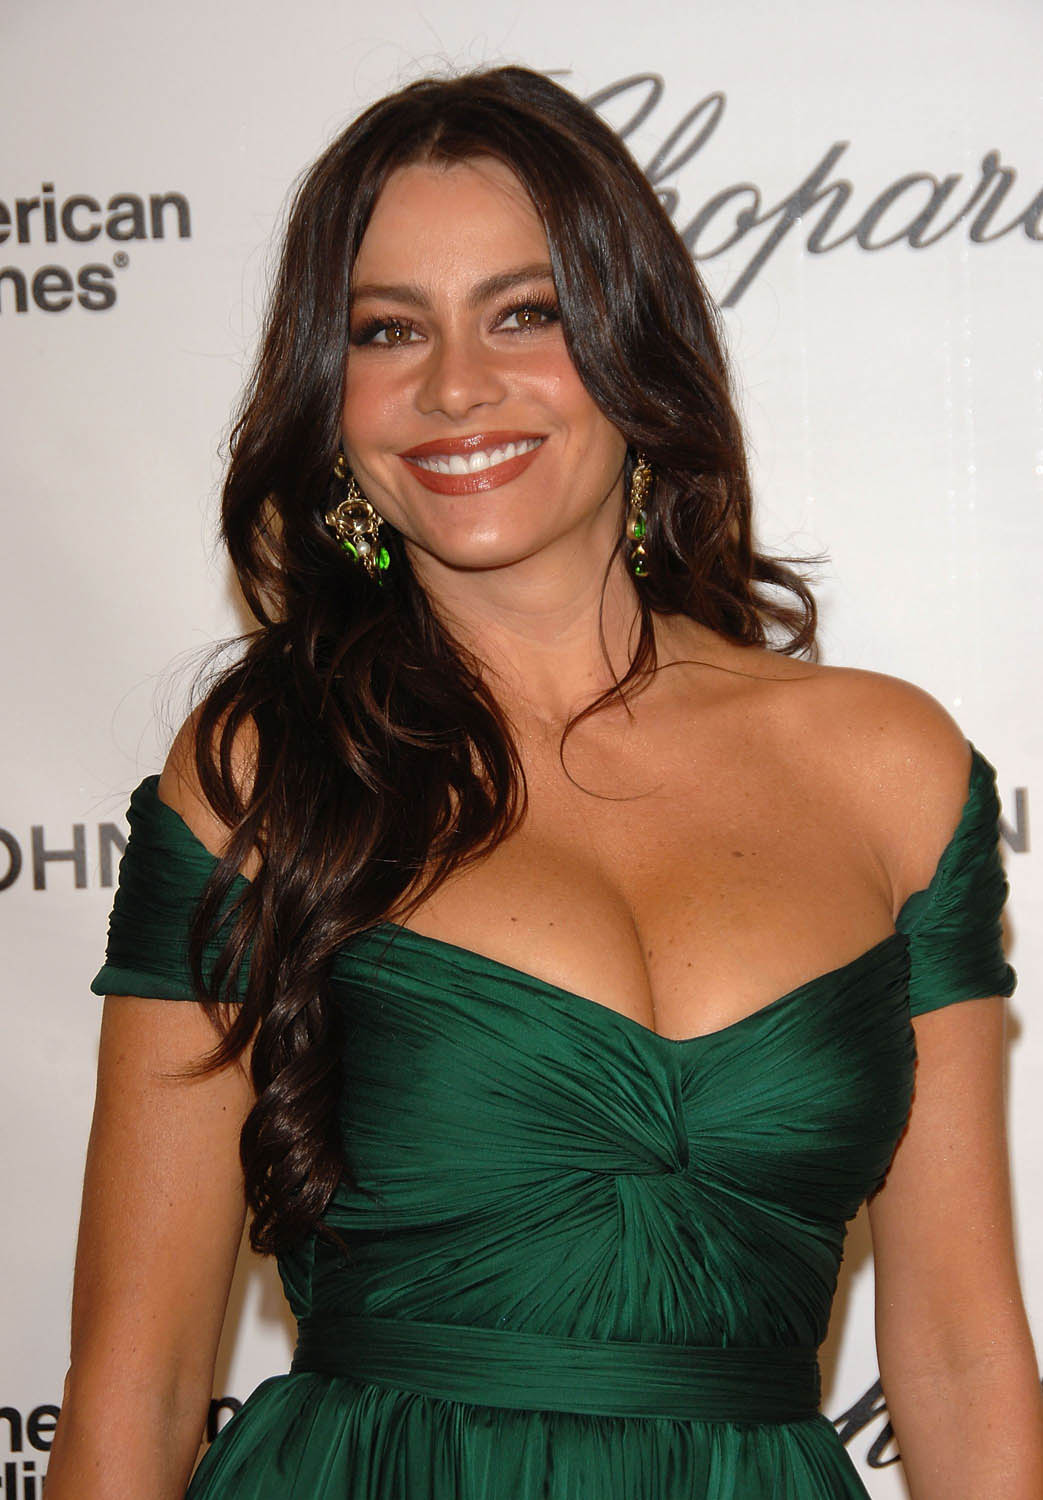 MagazineOh: Sofia Vergara highest paid television actress of 2013